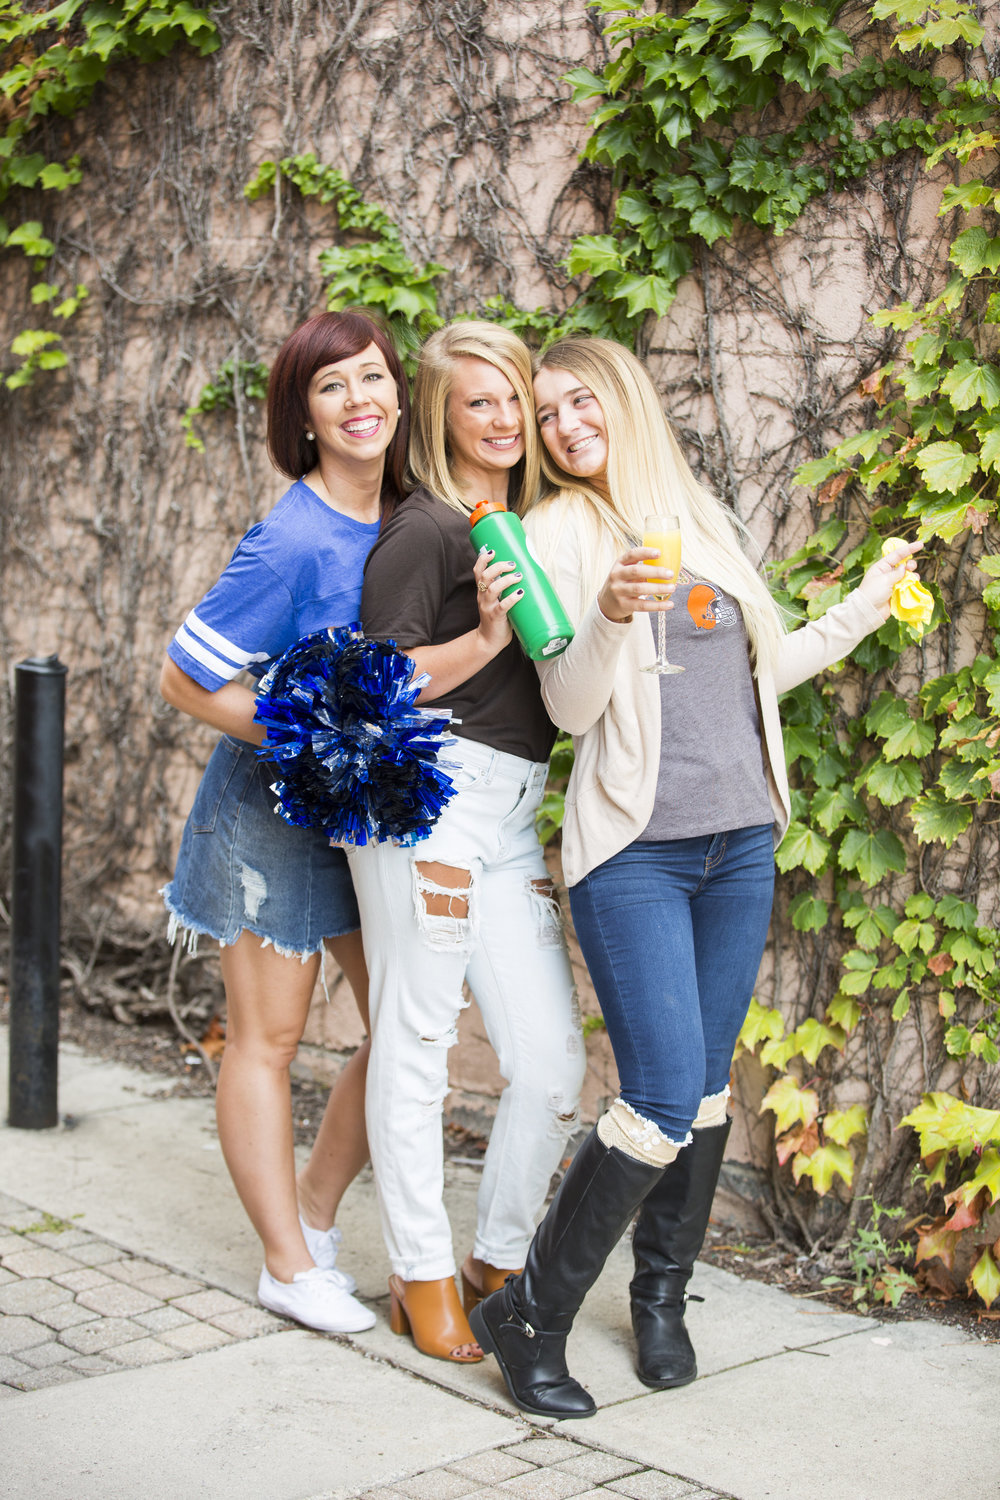 NFL Football Kickoff Party Ideas by Event Prep